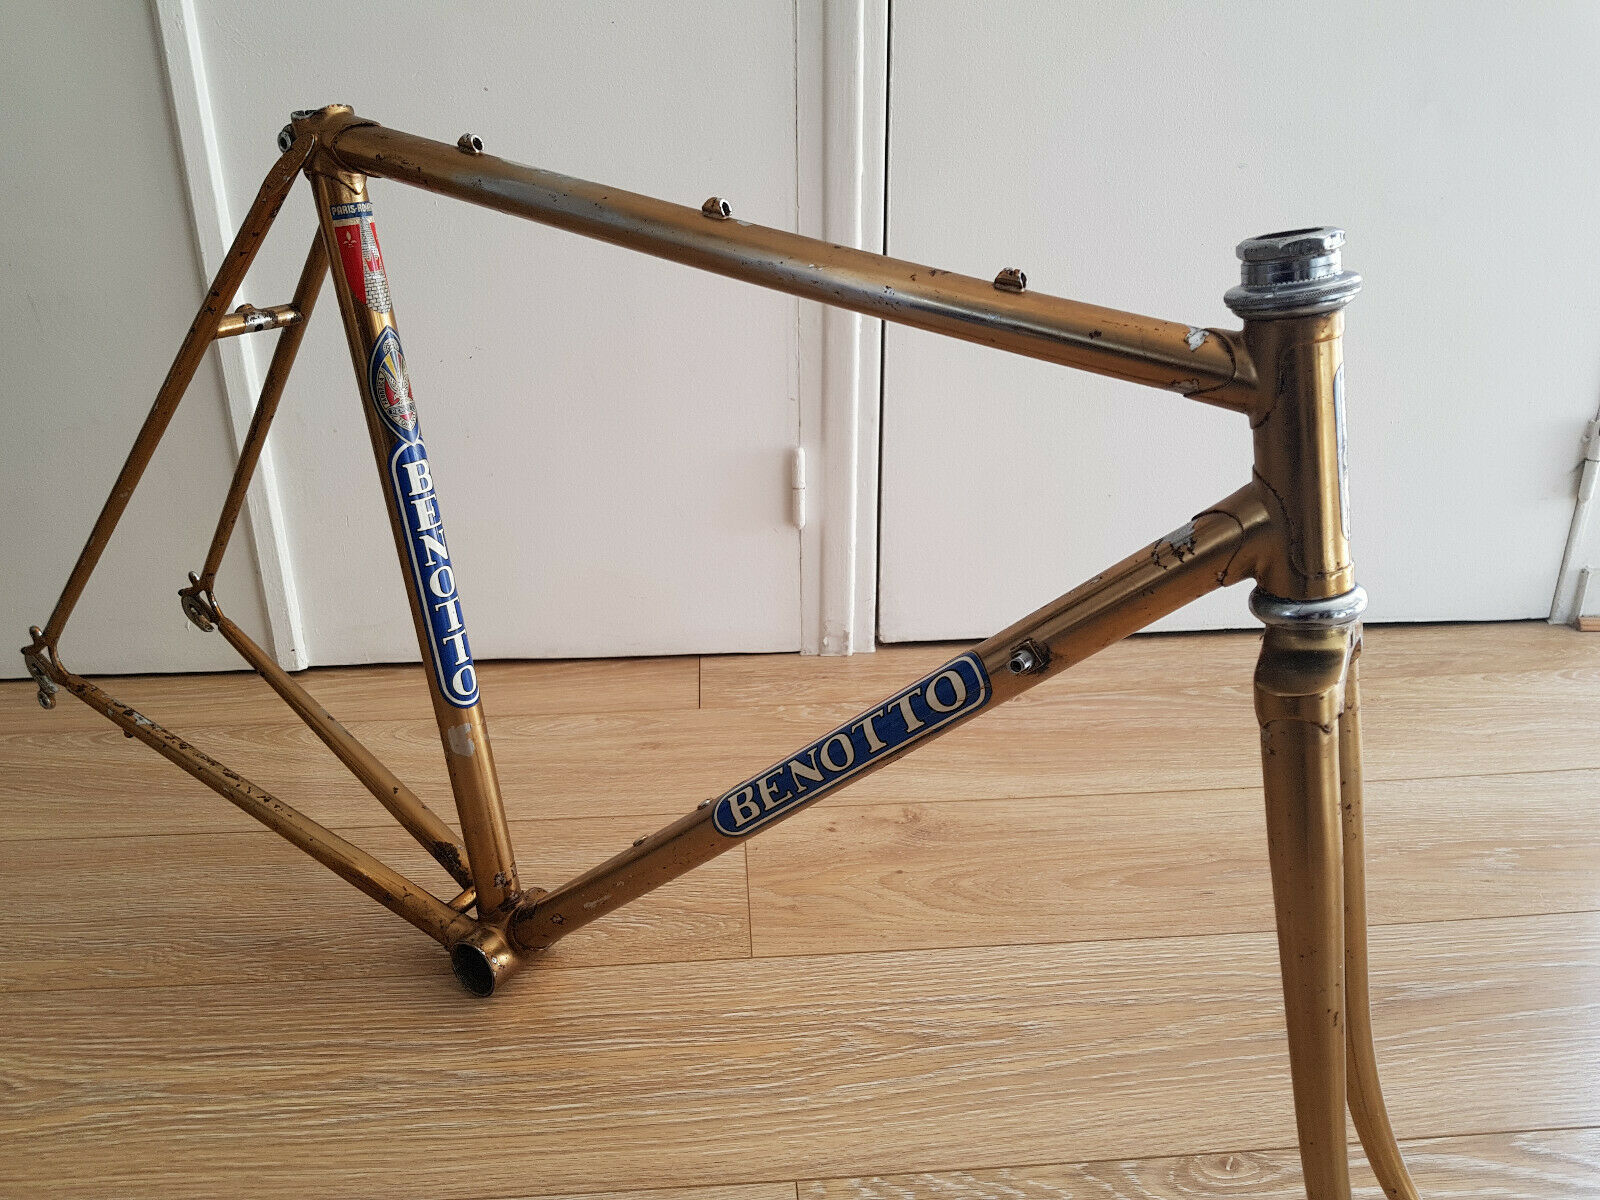 BENOTTO vintage steel frame cadre road route OR oroEN rare Italian frame old